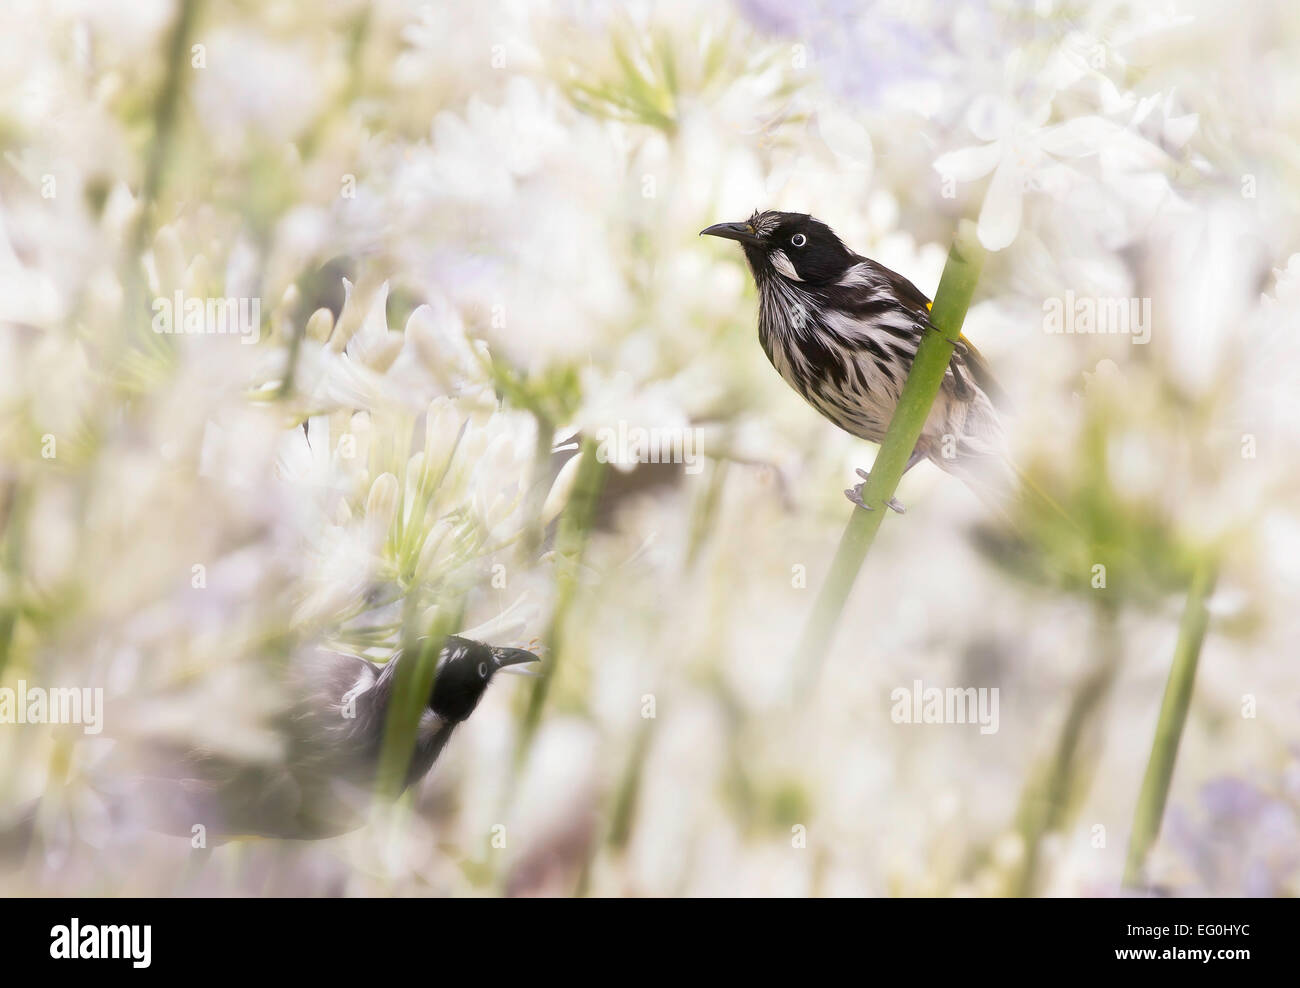 Australia, Melbourne, New Holland Honeyeaters in Agapanthus flowers - Stock Image